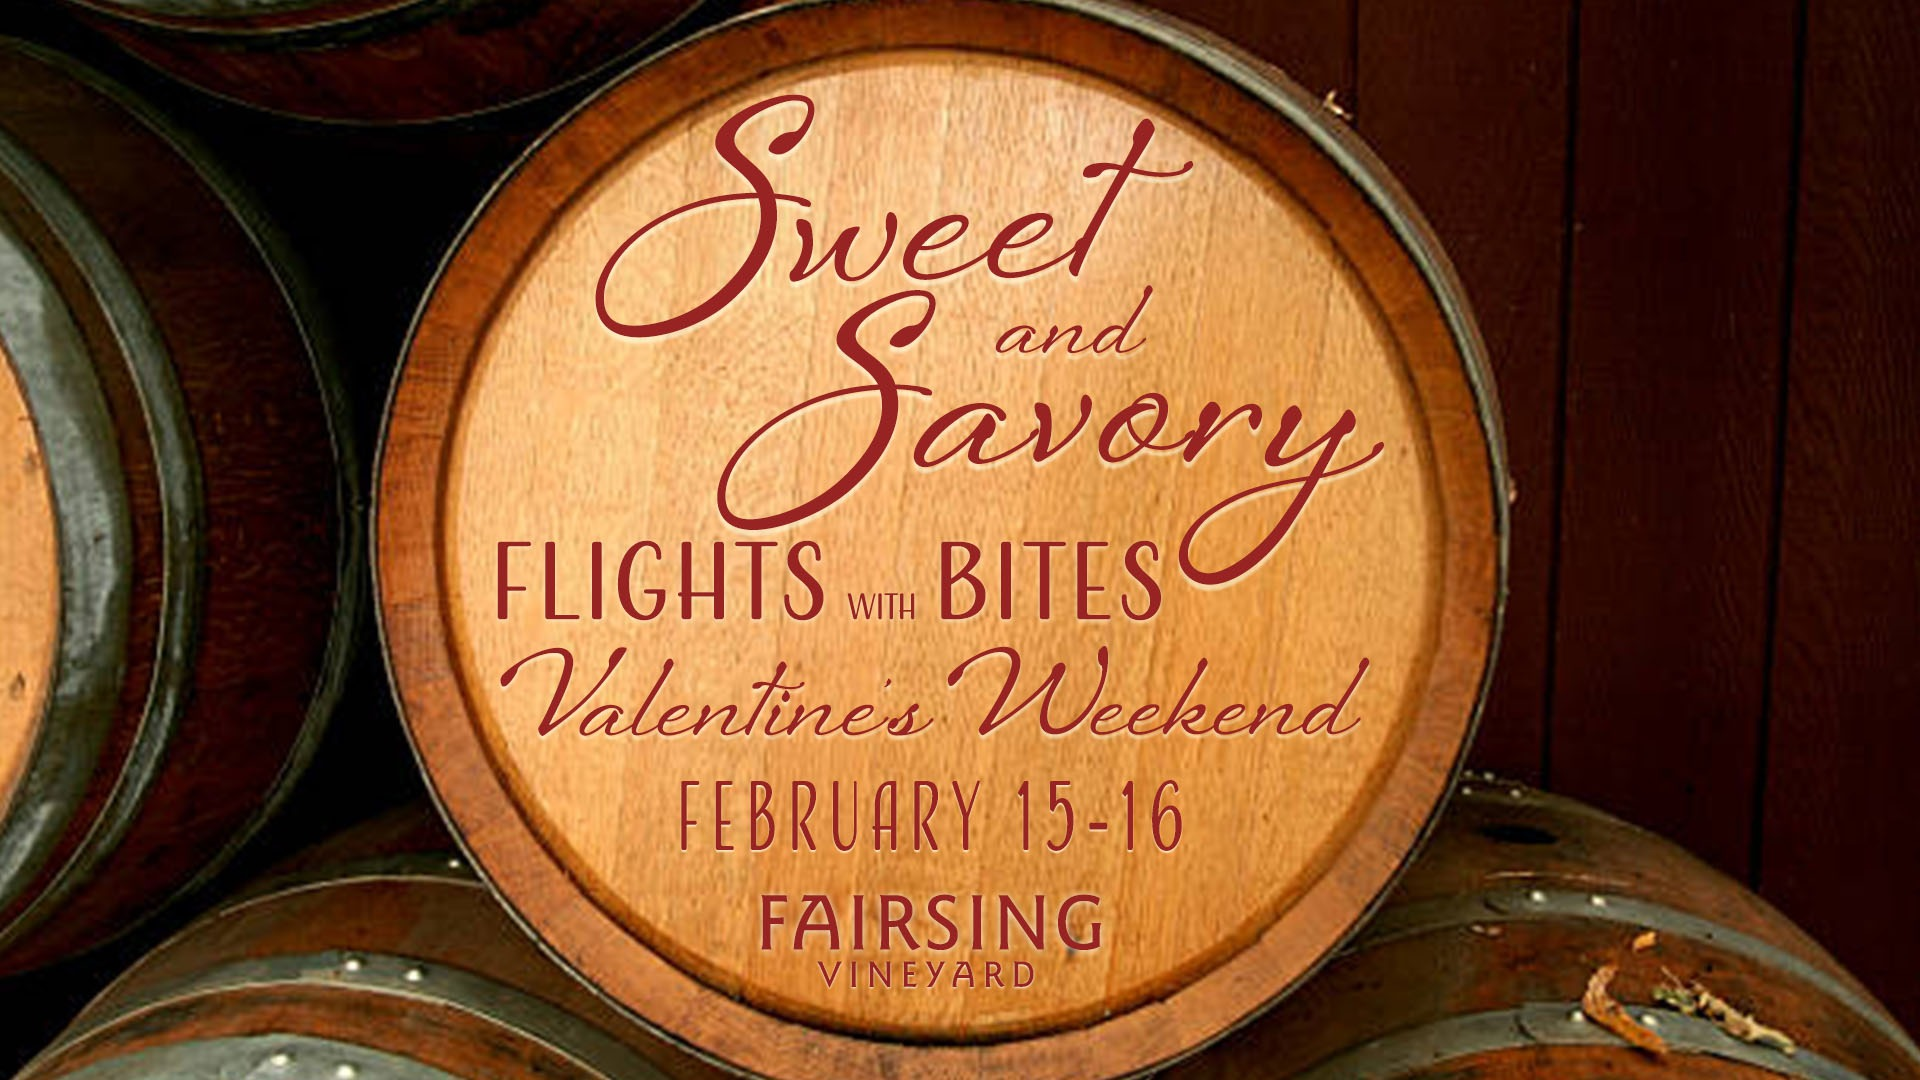 Sweet and Savory Weekend @ Fairsing Vineyard